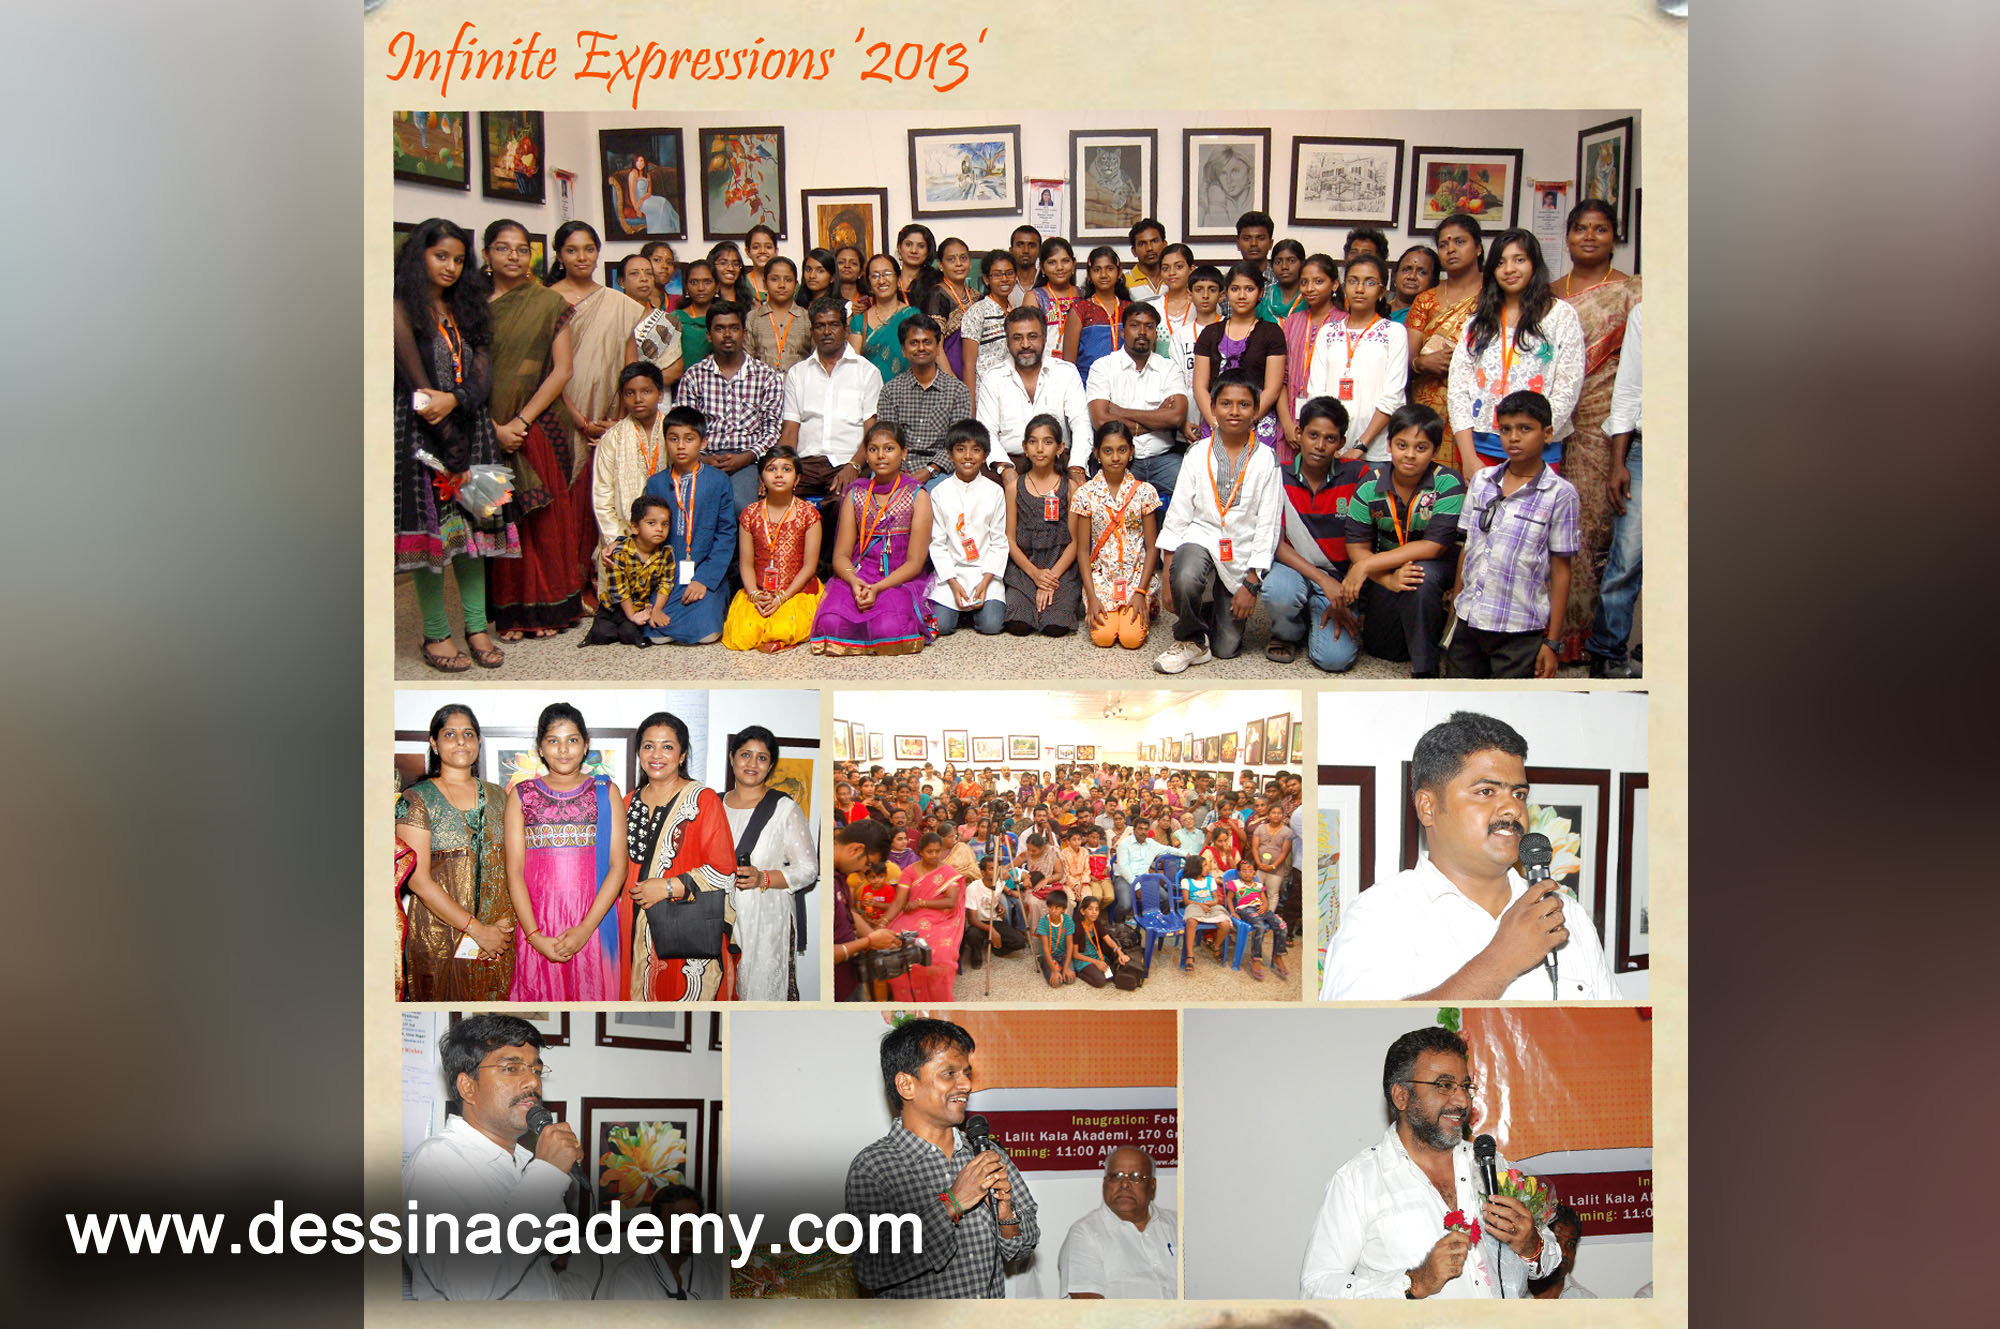 Dessin School of arts Event Gallery 3, part time fine arts courses Coaching in Anna Nagar East L BlockDessin School of Arts